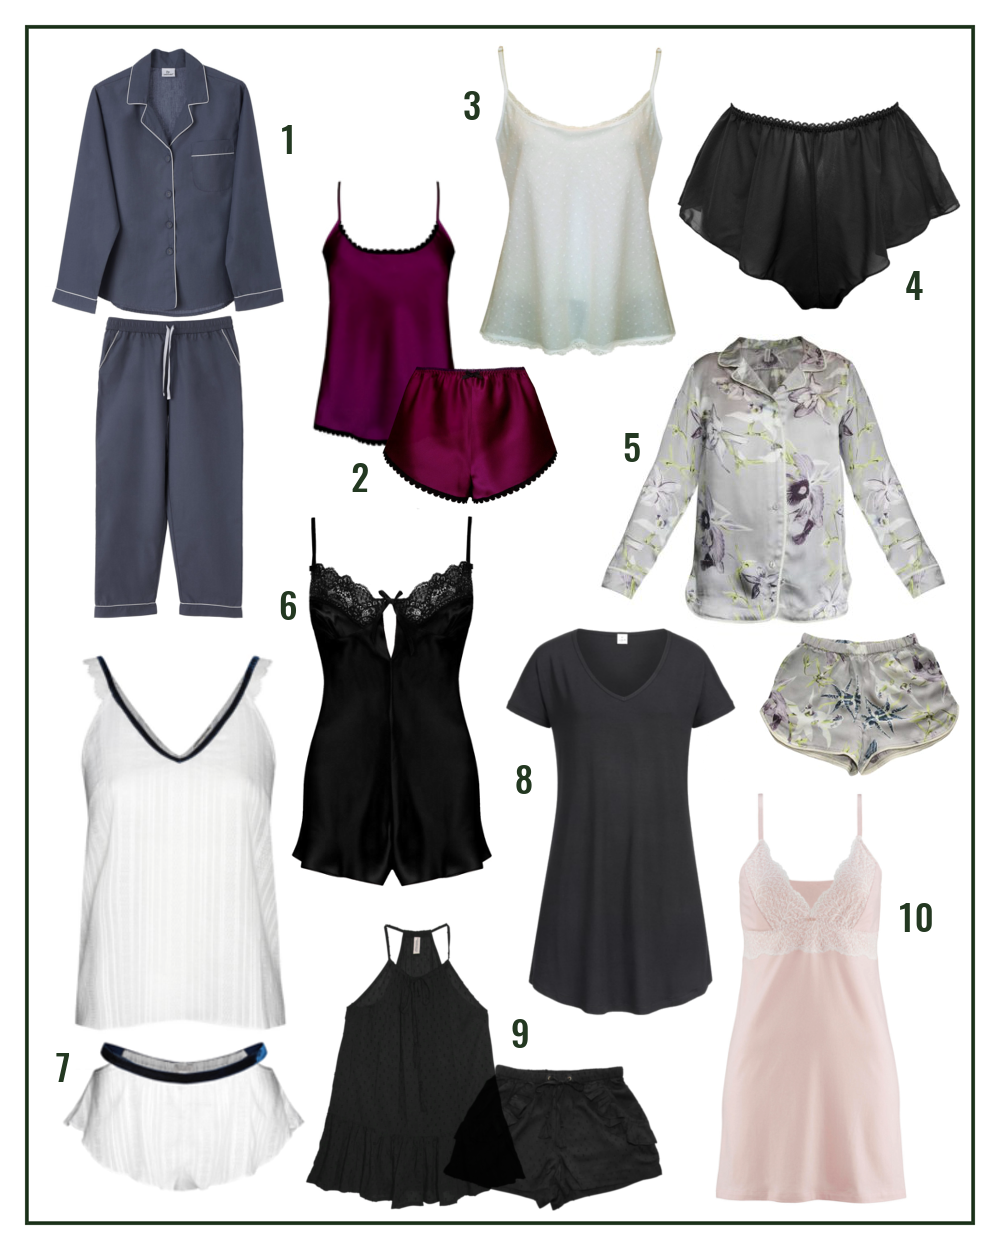 10 Pretty Things To Sleep In.png